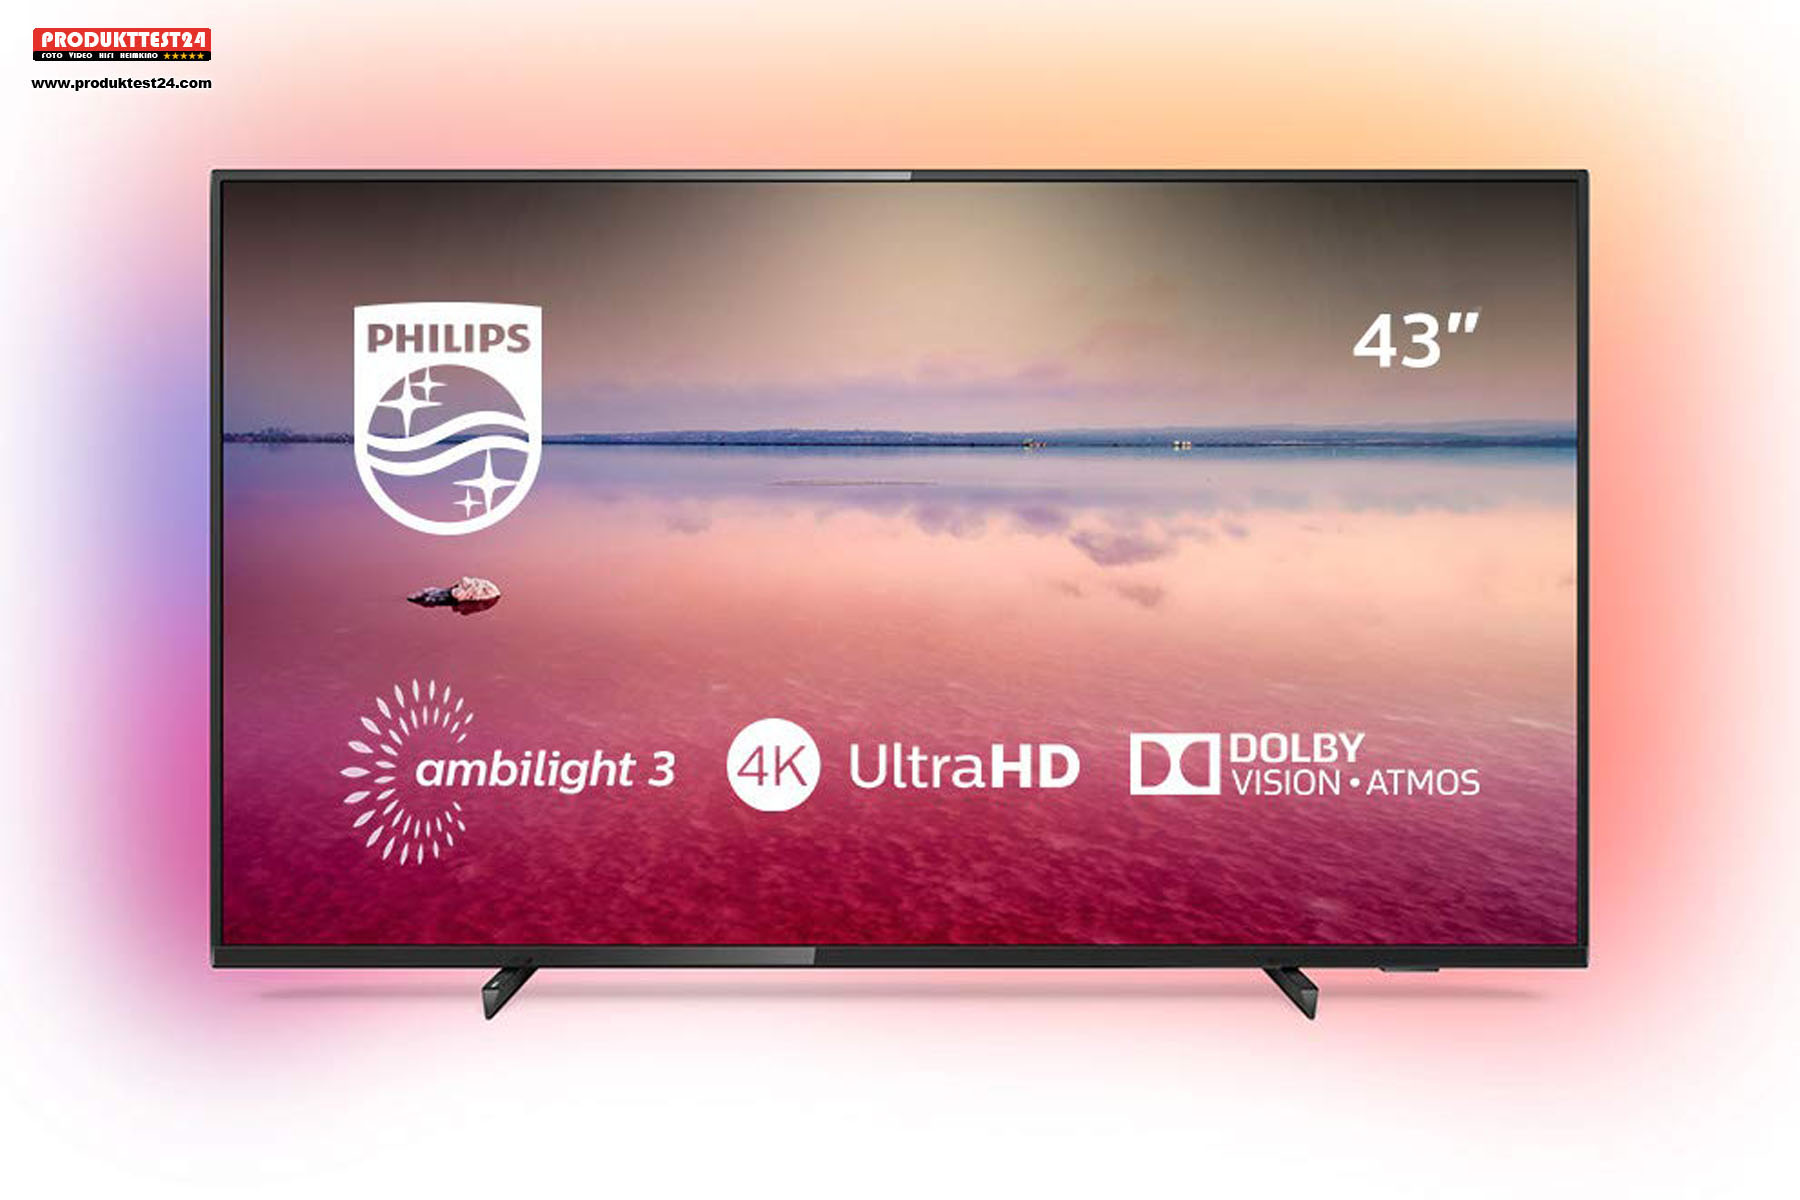 Philips 43PUS6704/12 mit Ambilight 3, Ultra HD Display und Dolby Vision sowie HDR10+